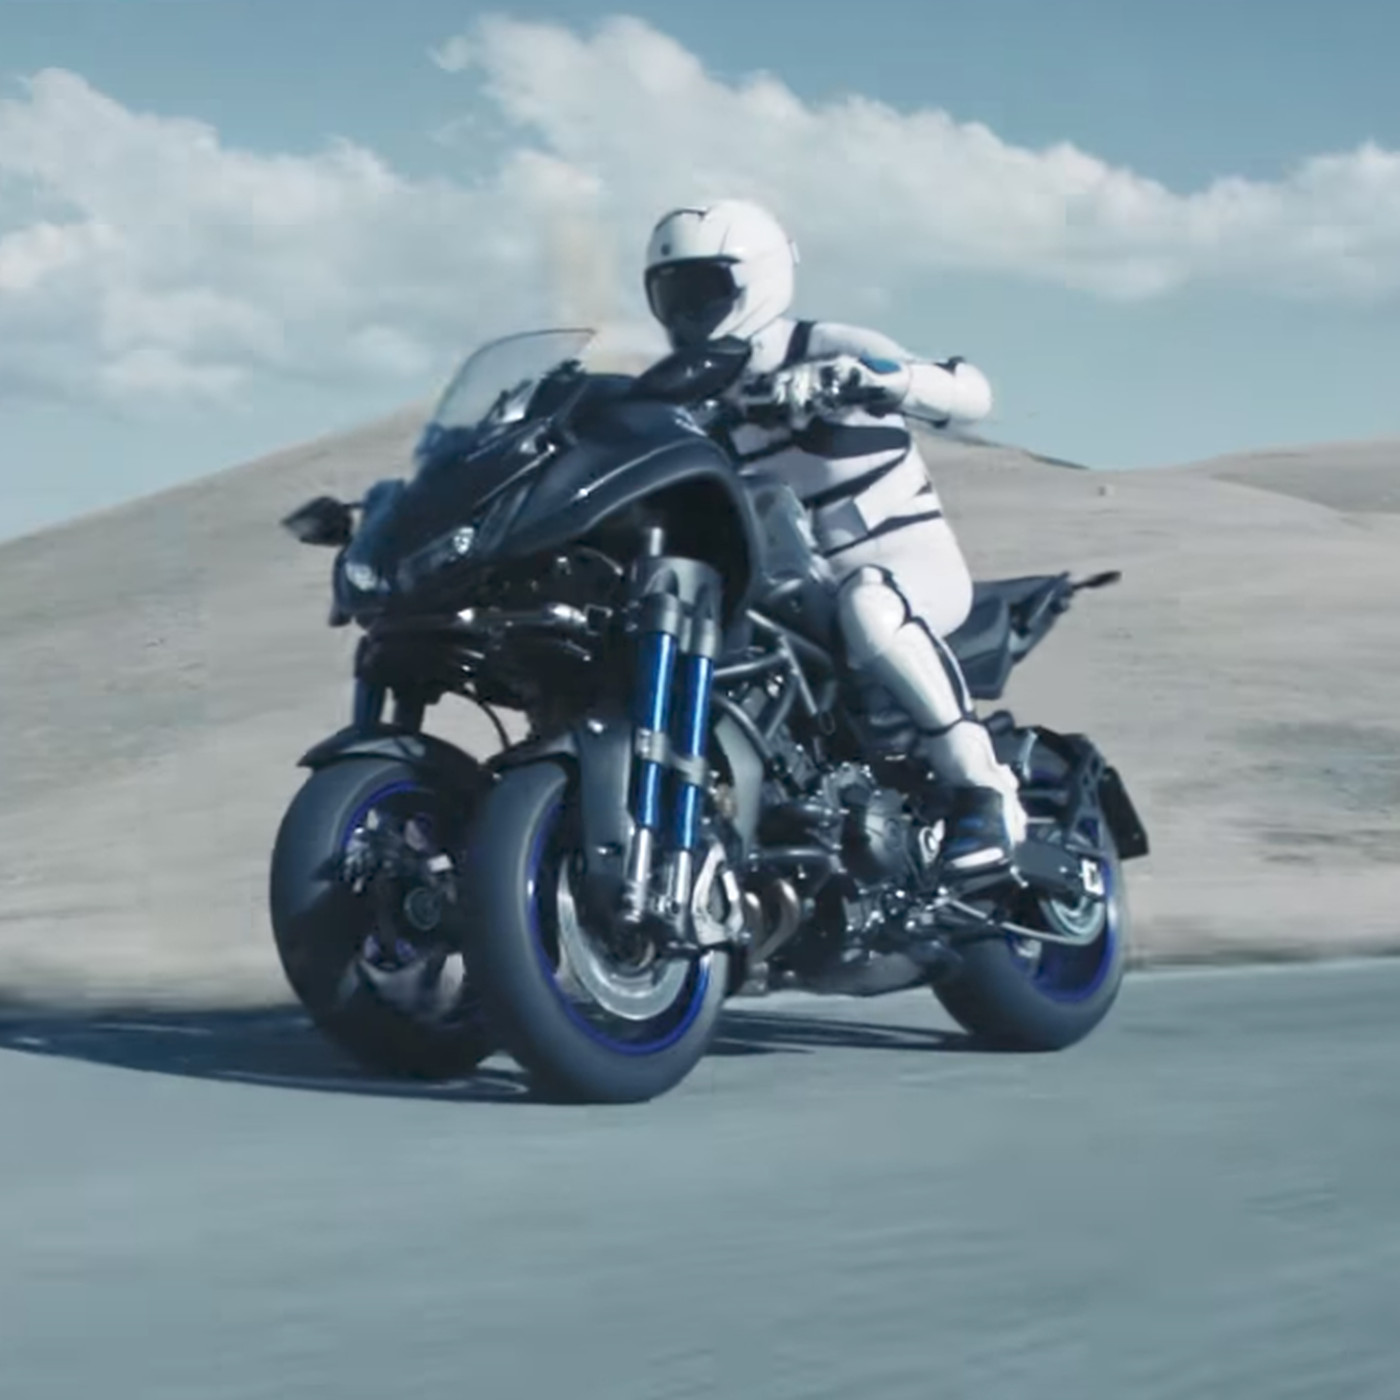 Yamaha's new concept motorcycle would let you slalom into